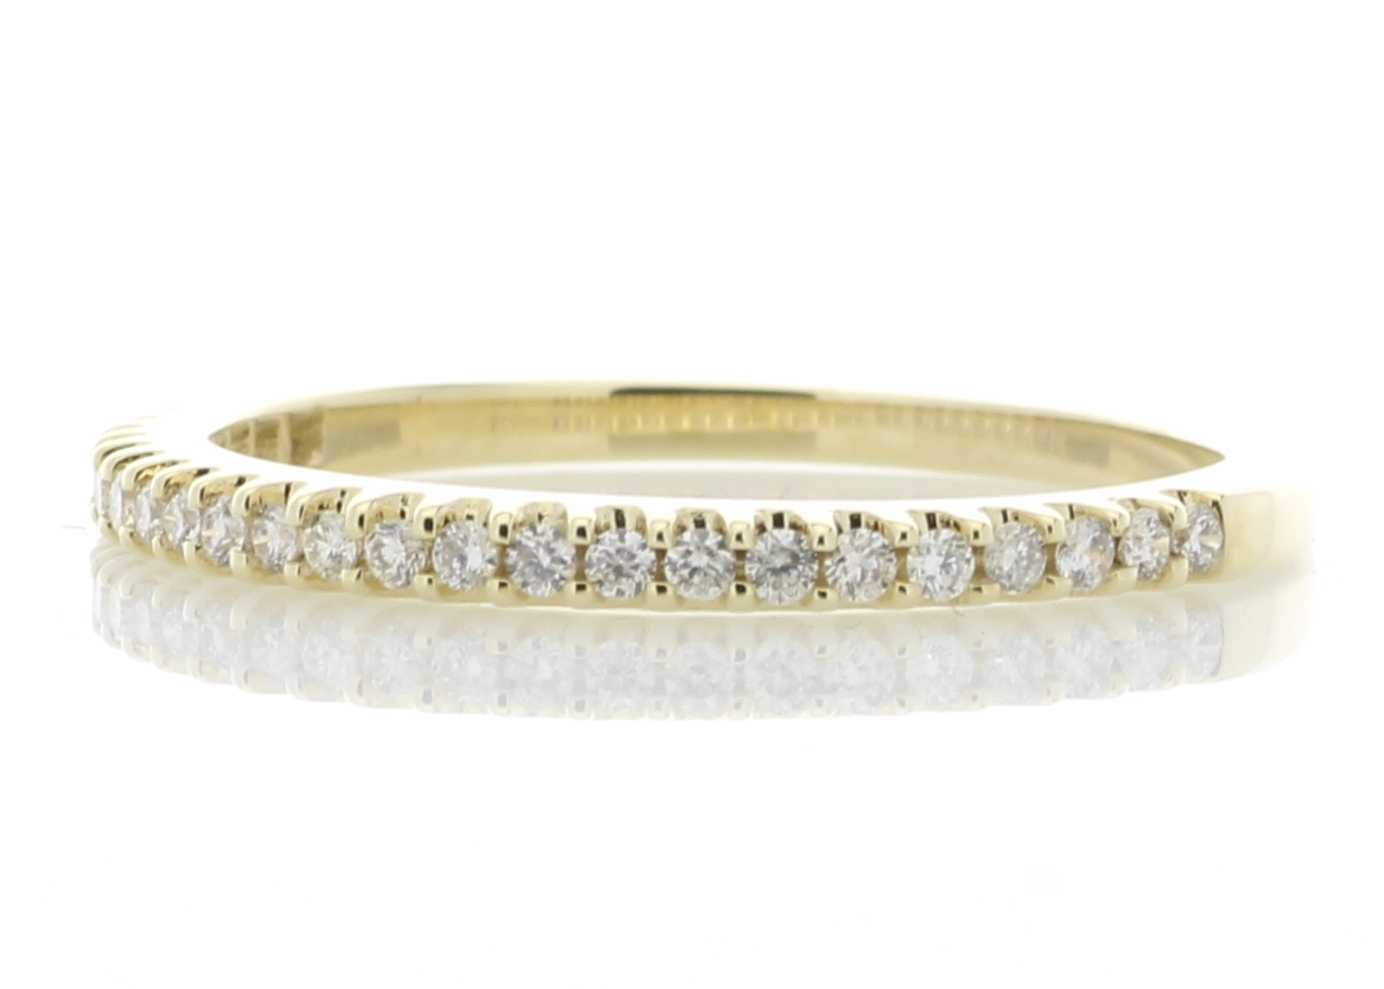 9ct Yellow Gold Diamond Half Eternity Ring 0.25 Carats - Image 2 of 4